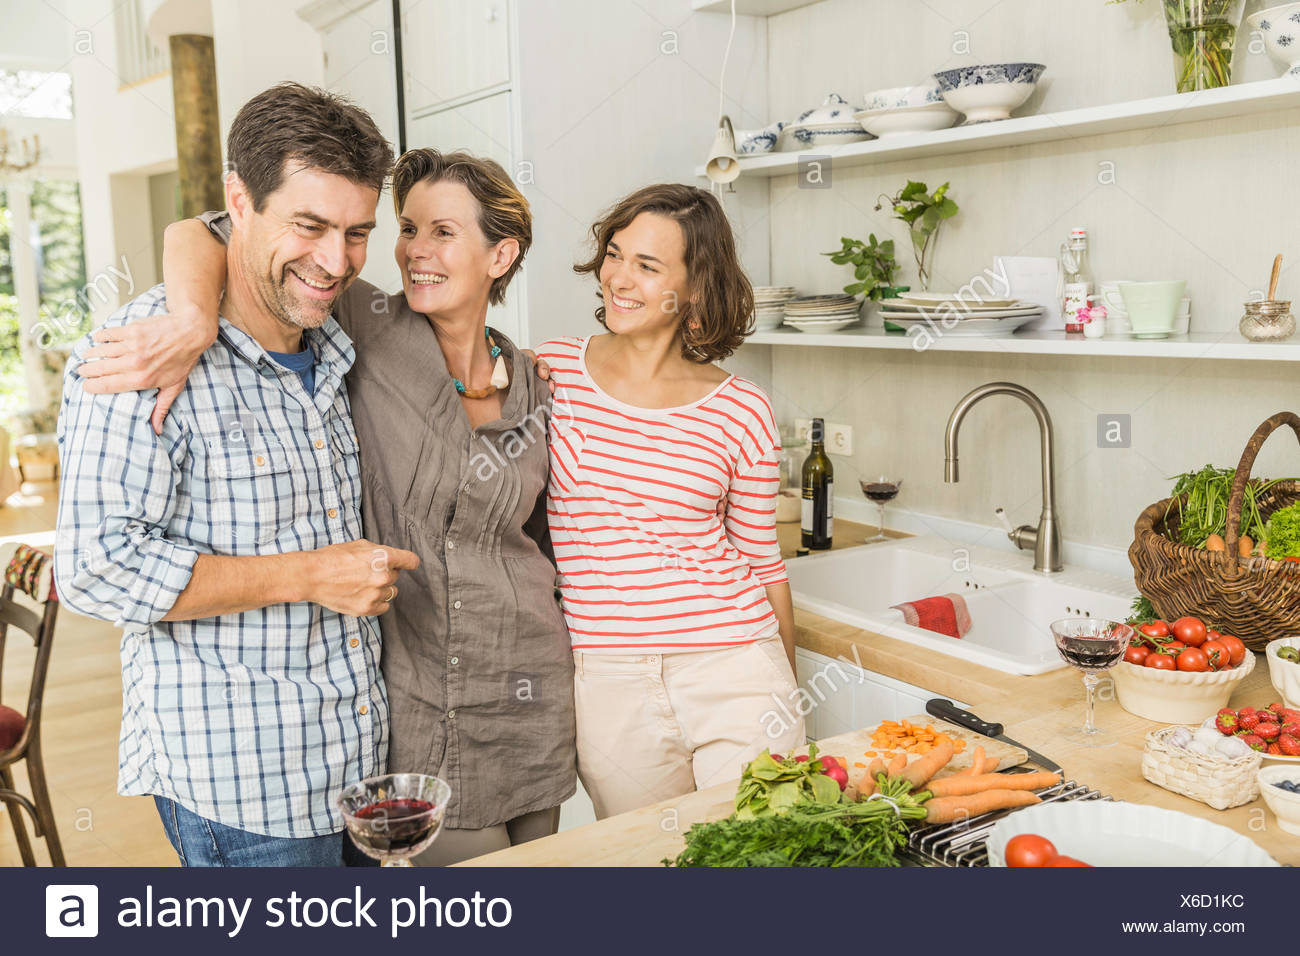 Portrait of three adults preparing fresh vegetables in kitchen - Stock Image